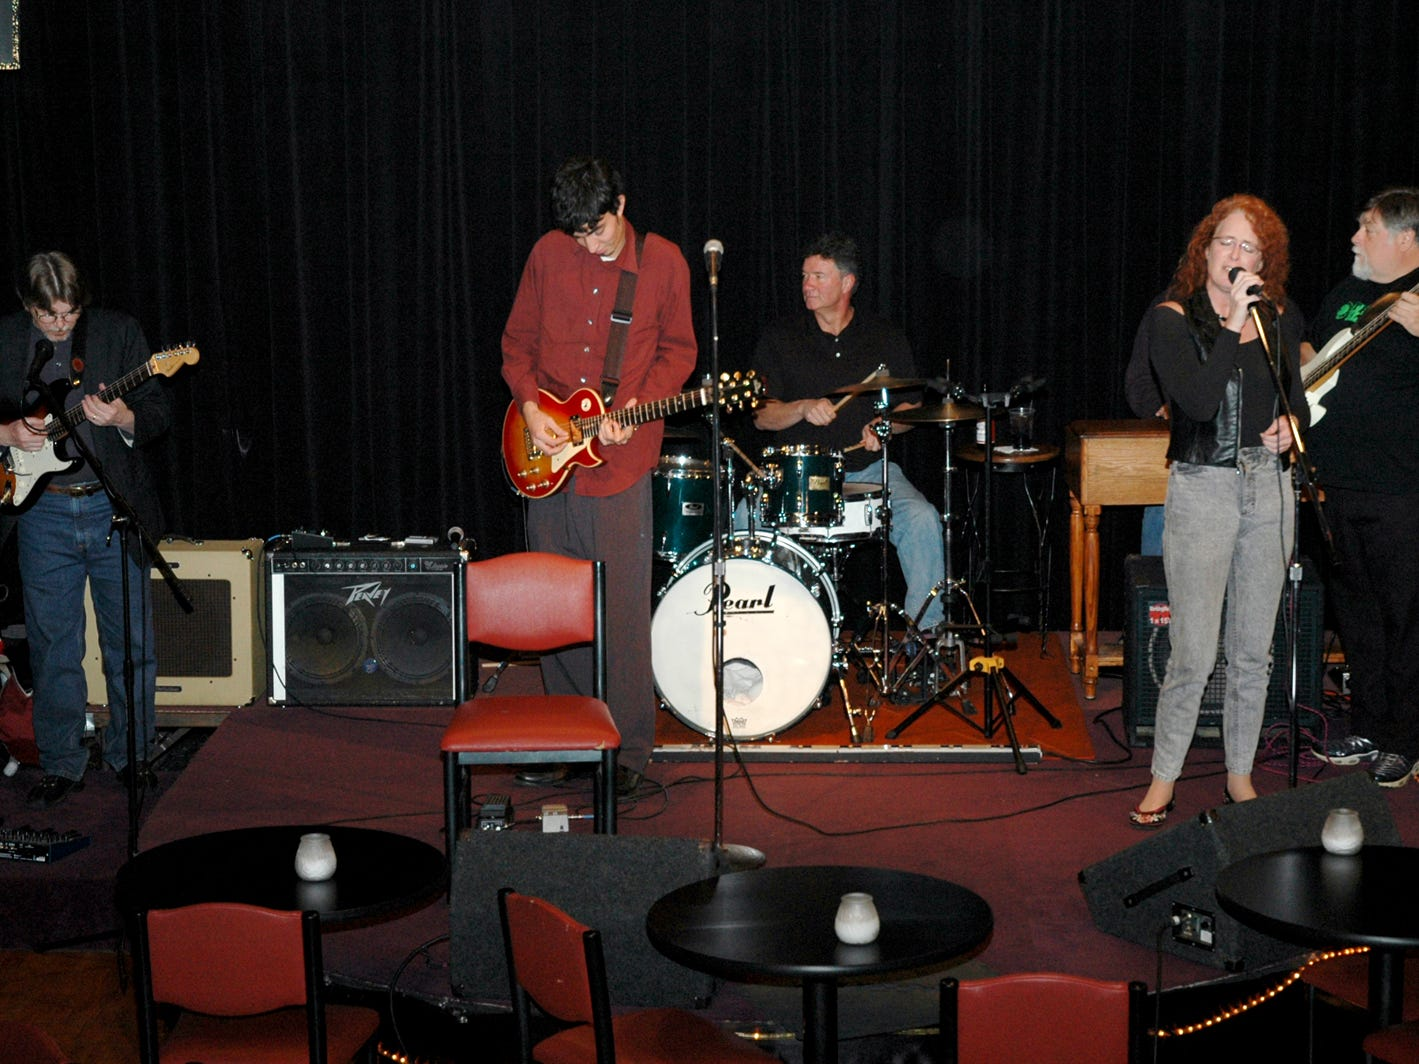 Gary Fields Rock Band members guitarists Jim Klein and Eddie Robinson, drummer Bryon Taber, singer Debbie Ploehn, bass player Tom Sharp, and organist Harry Robinson play their show at Gary Fields Comedy Club in 2007.